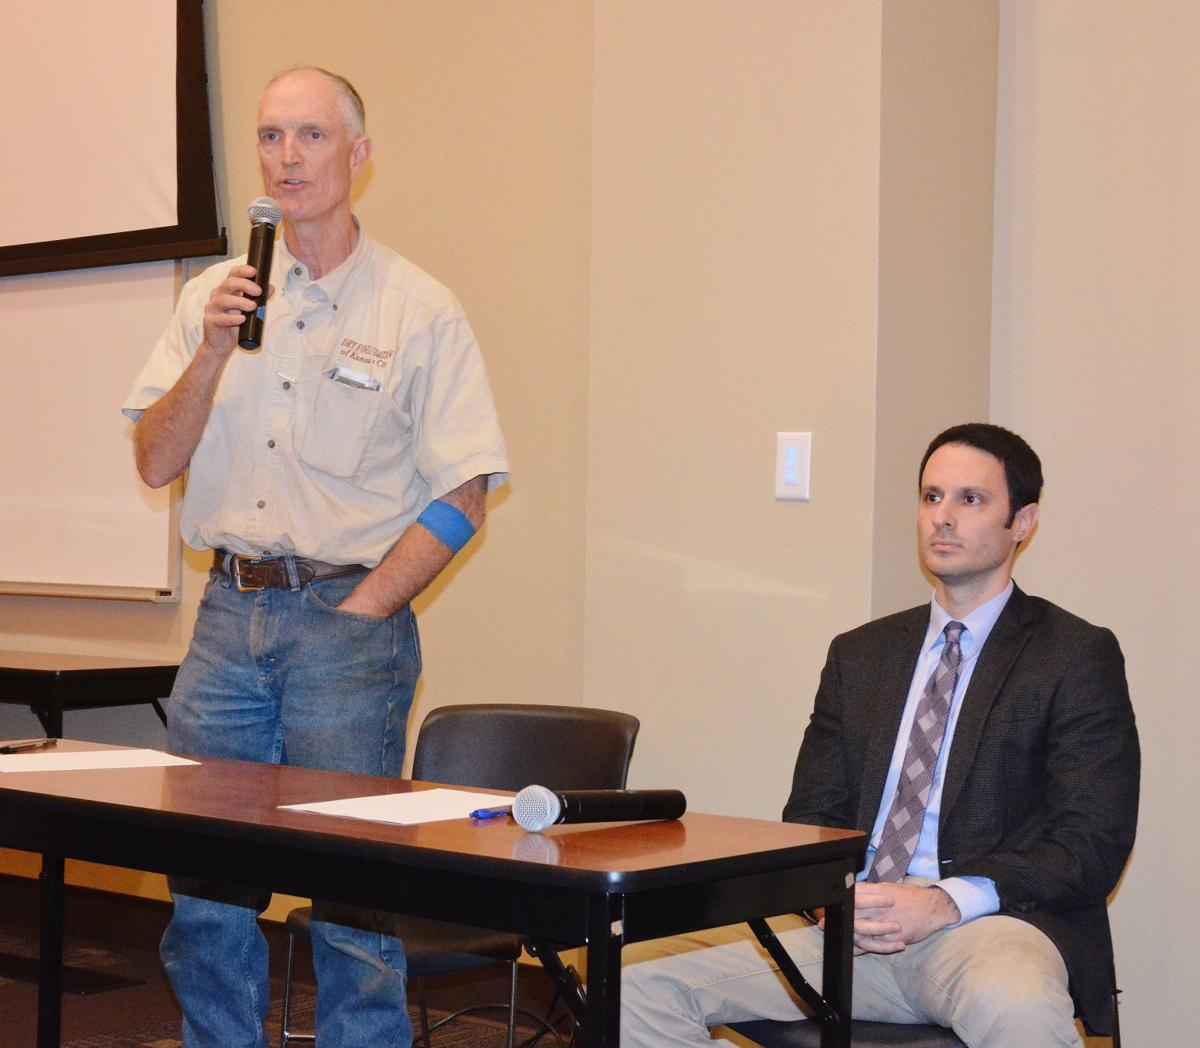 County candidates share views on challenges offices face